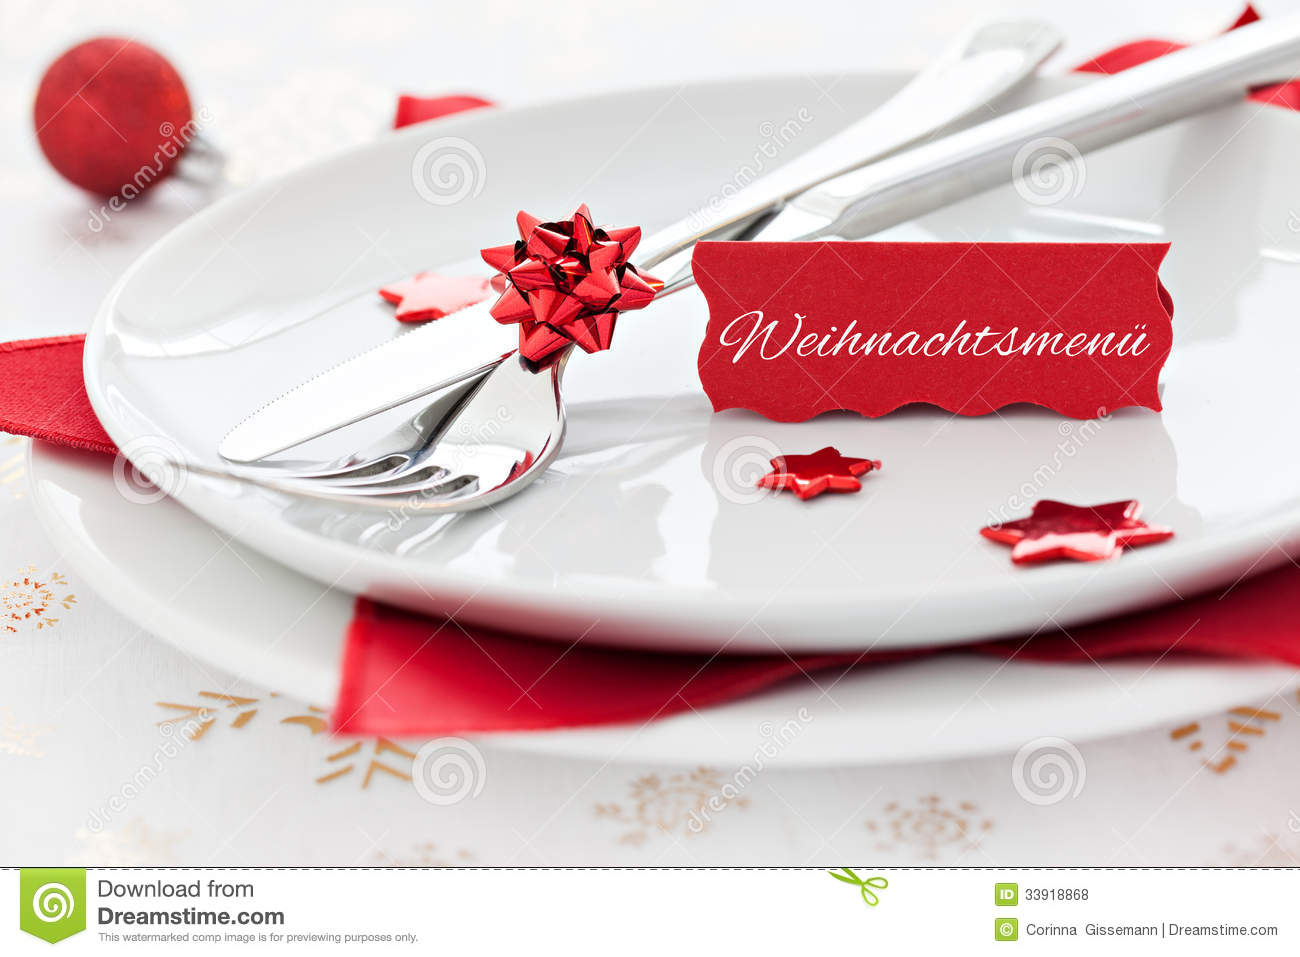 Tischgedeck Clipart Place Setting With Tag And German Text Royalty Free Stock